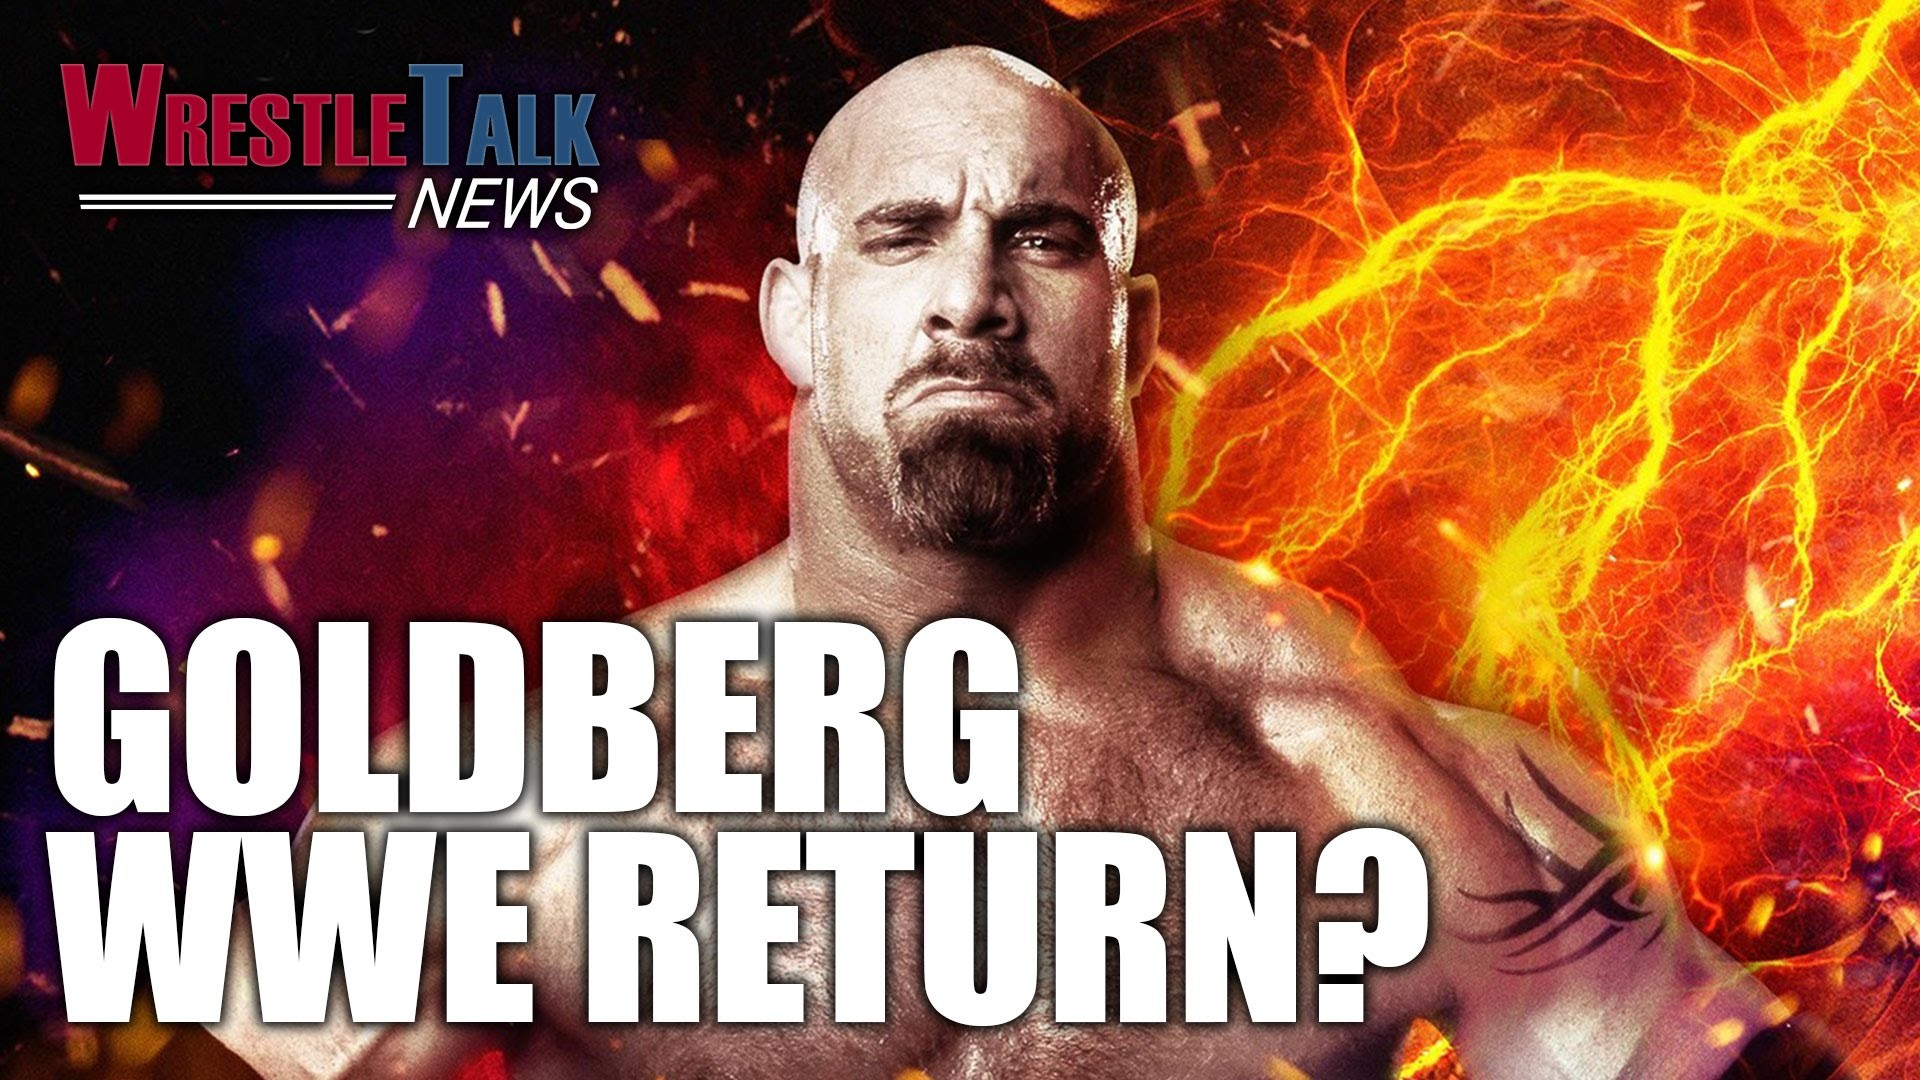 1920x1080 Goldberg Returning To WWE? Brock Lesnar Rematch Teased! | WrestleTalk News